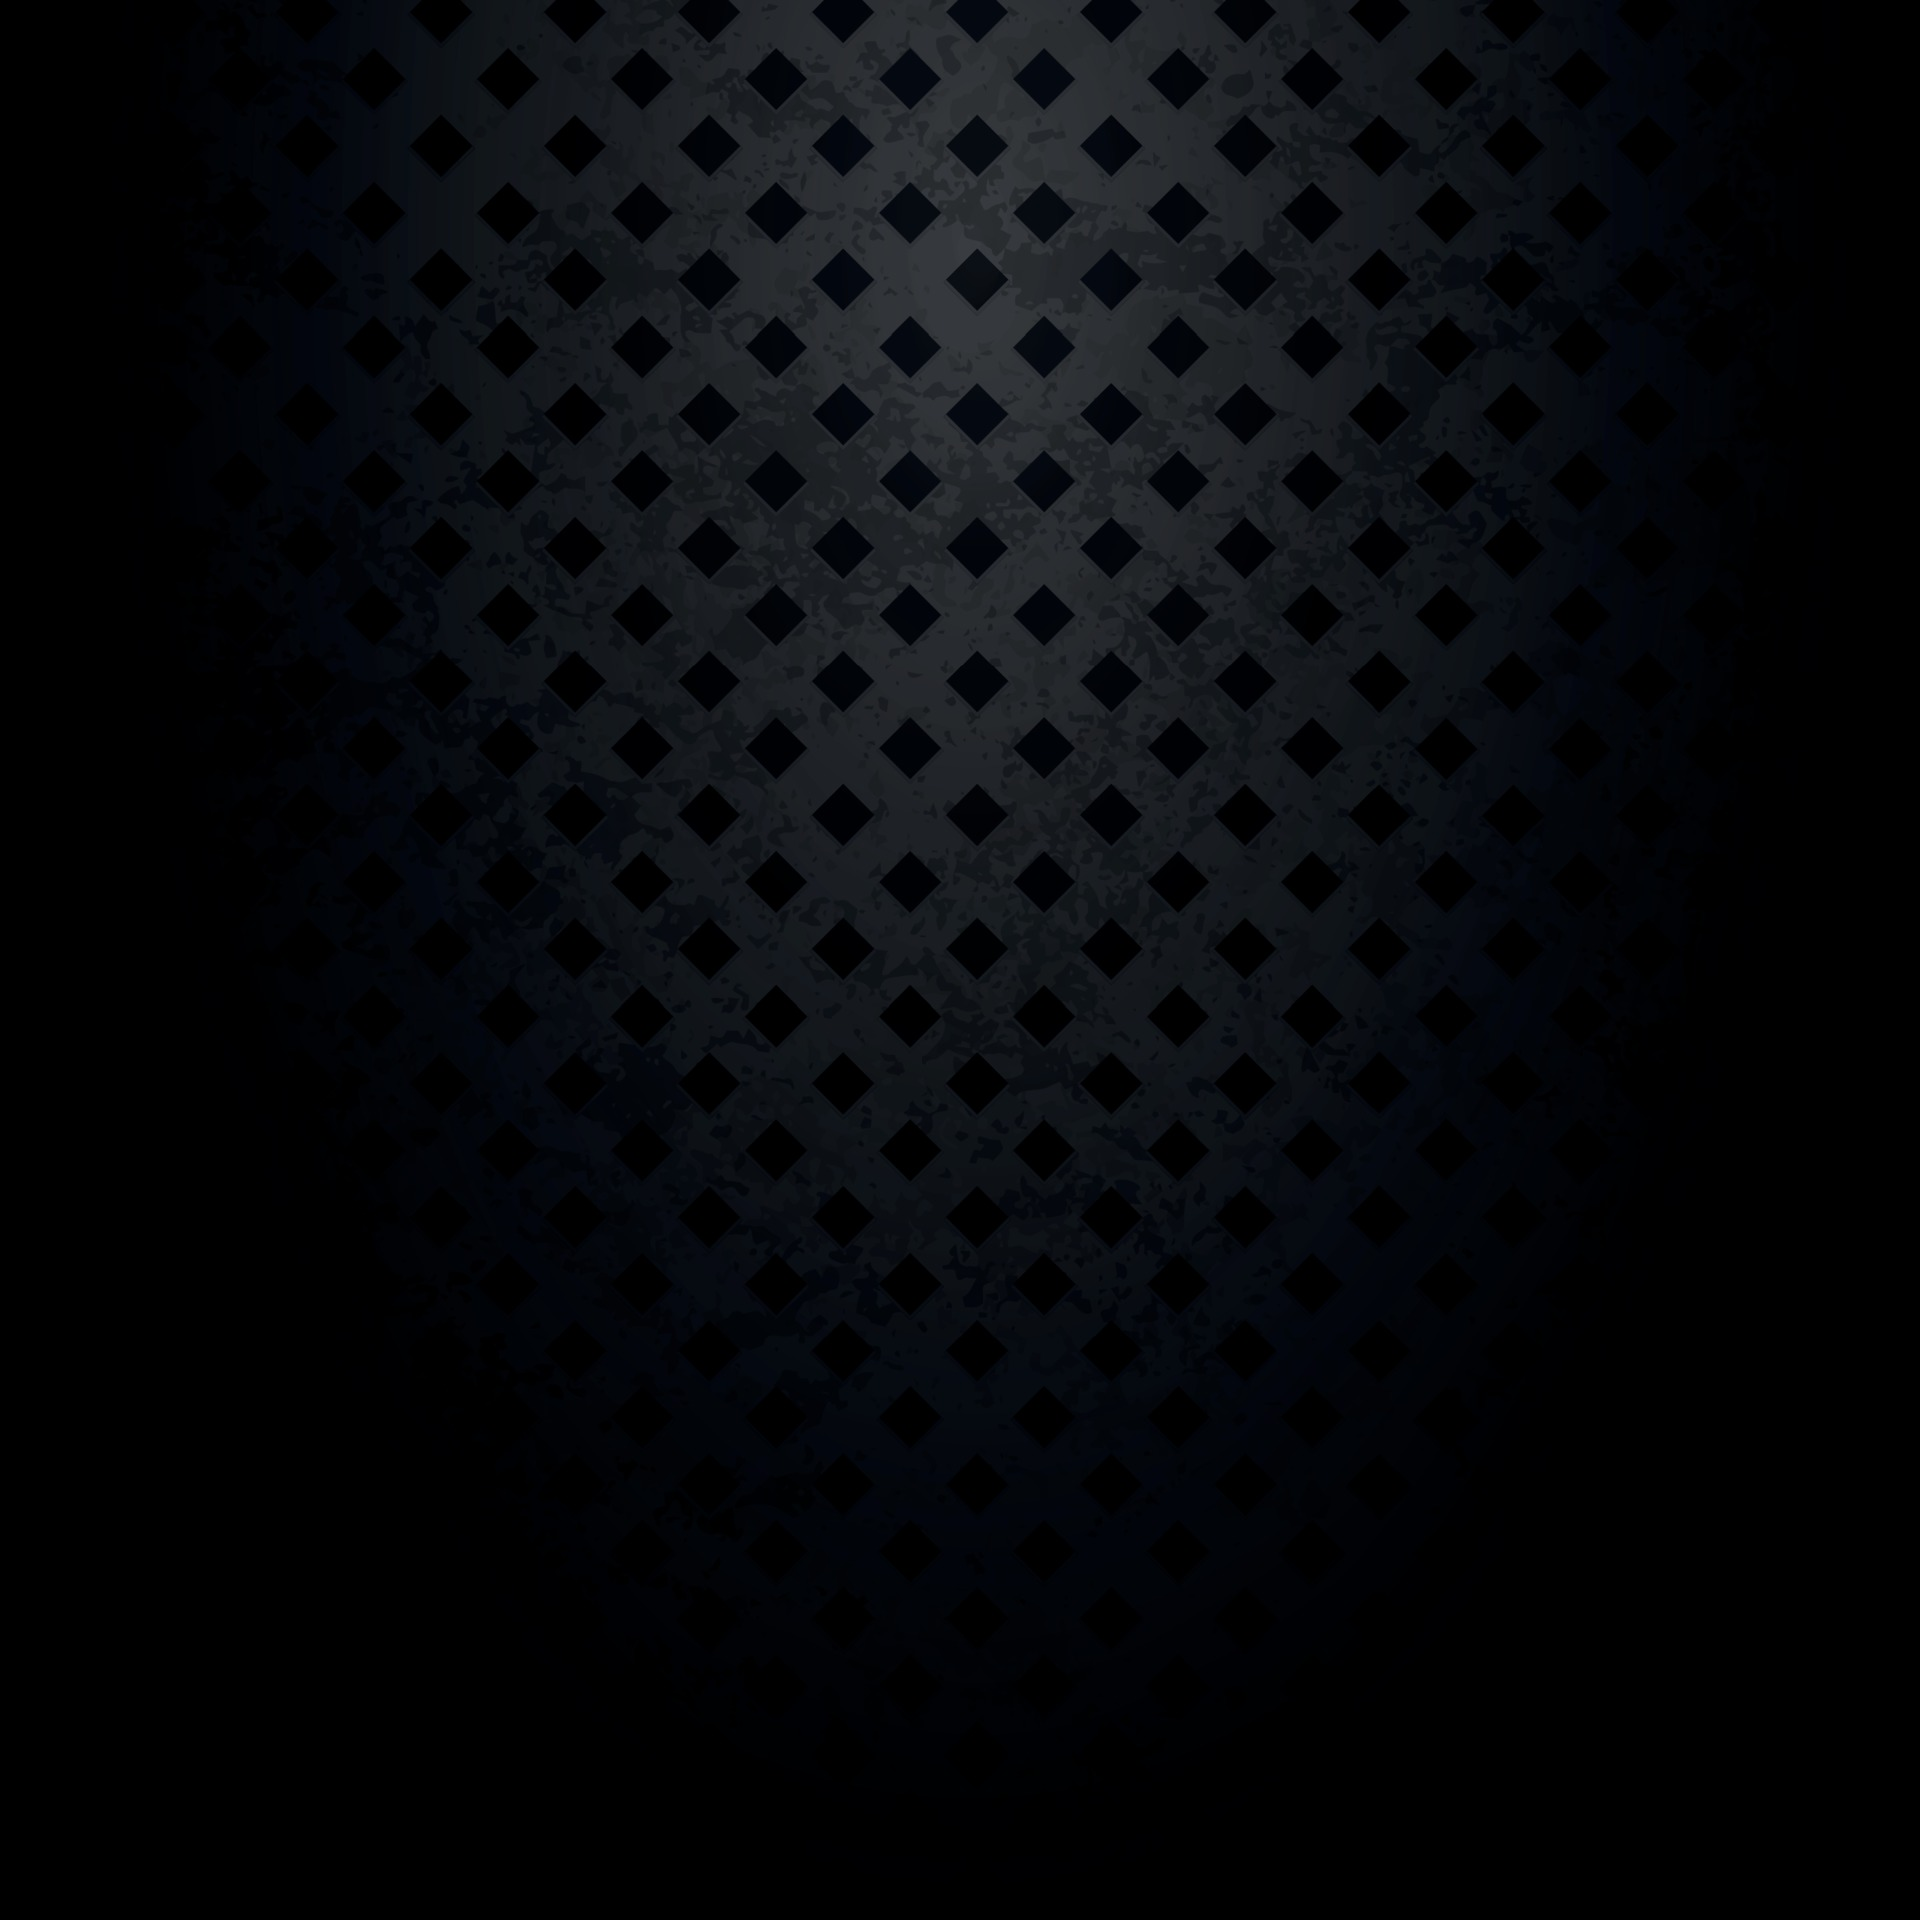 Black Perforated Background With Black Holes And Glow 2250760 Vector Art At  Vecteezy